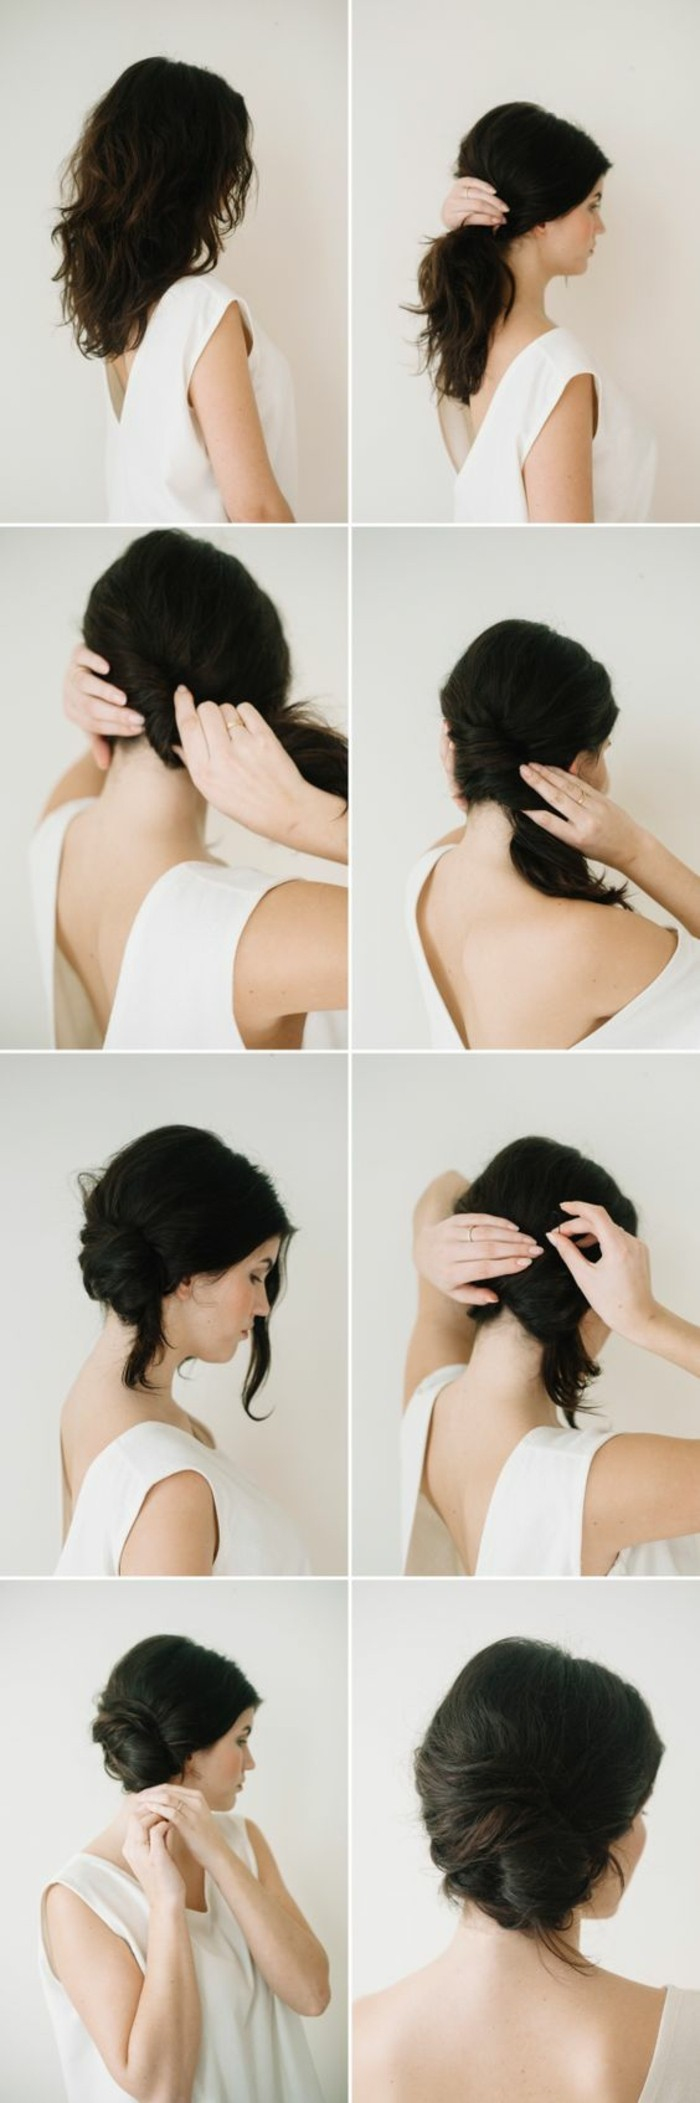 Comment faire un chignon flou fashion designs - Chignon moderne 2017 ...